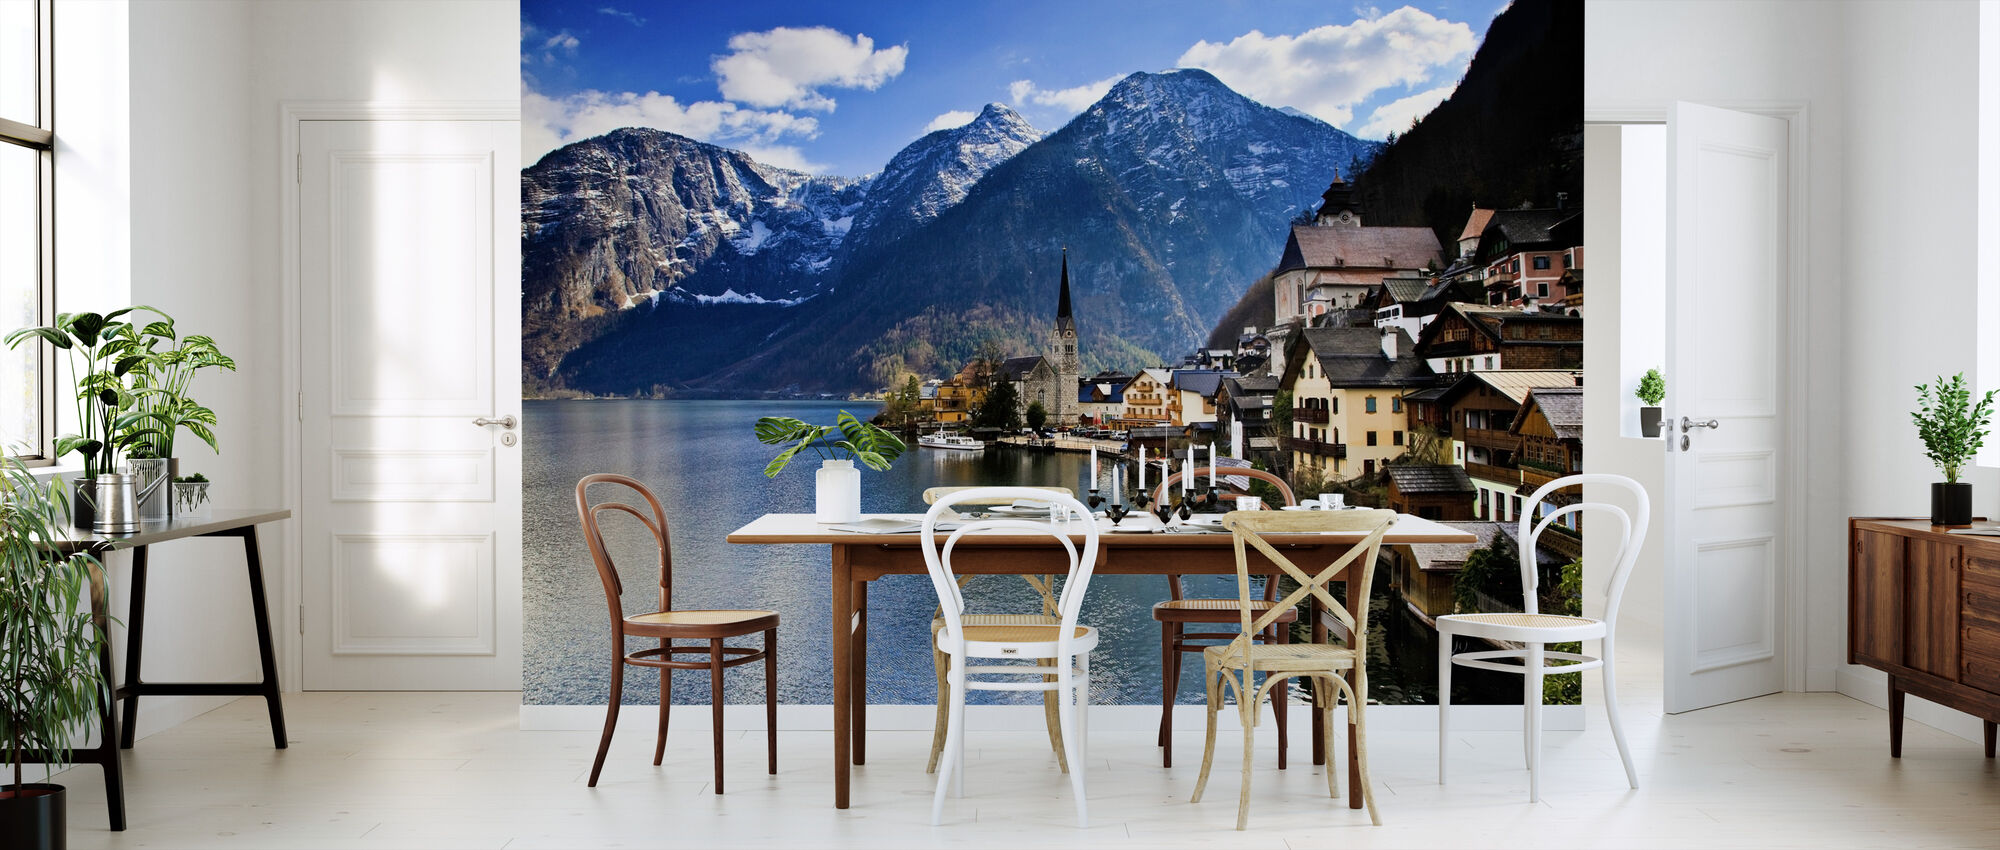 Small Austrian Mountain Village - Wallpaper - Kitchen